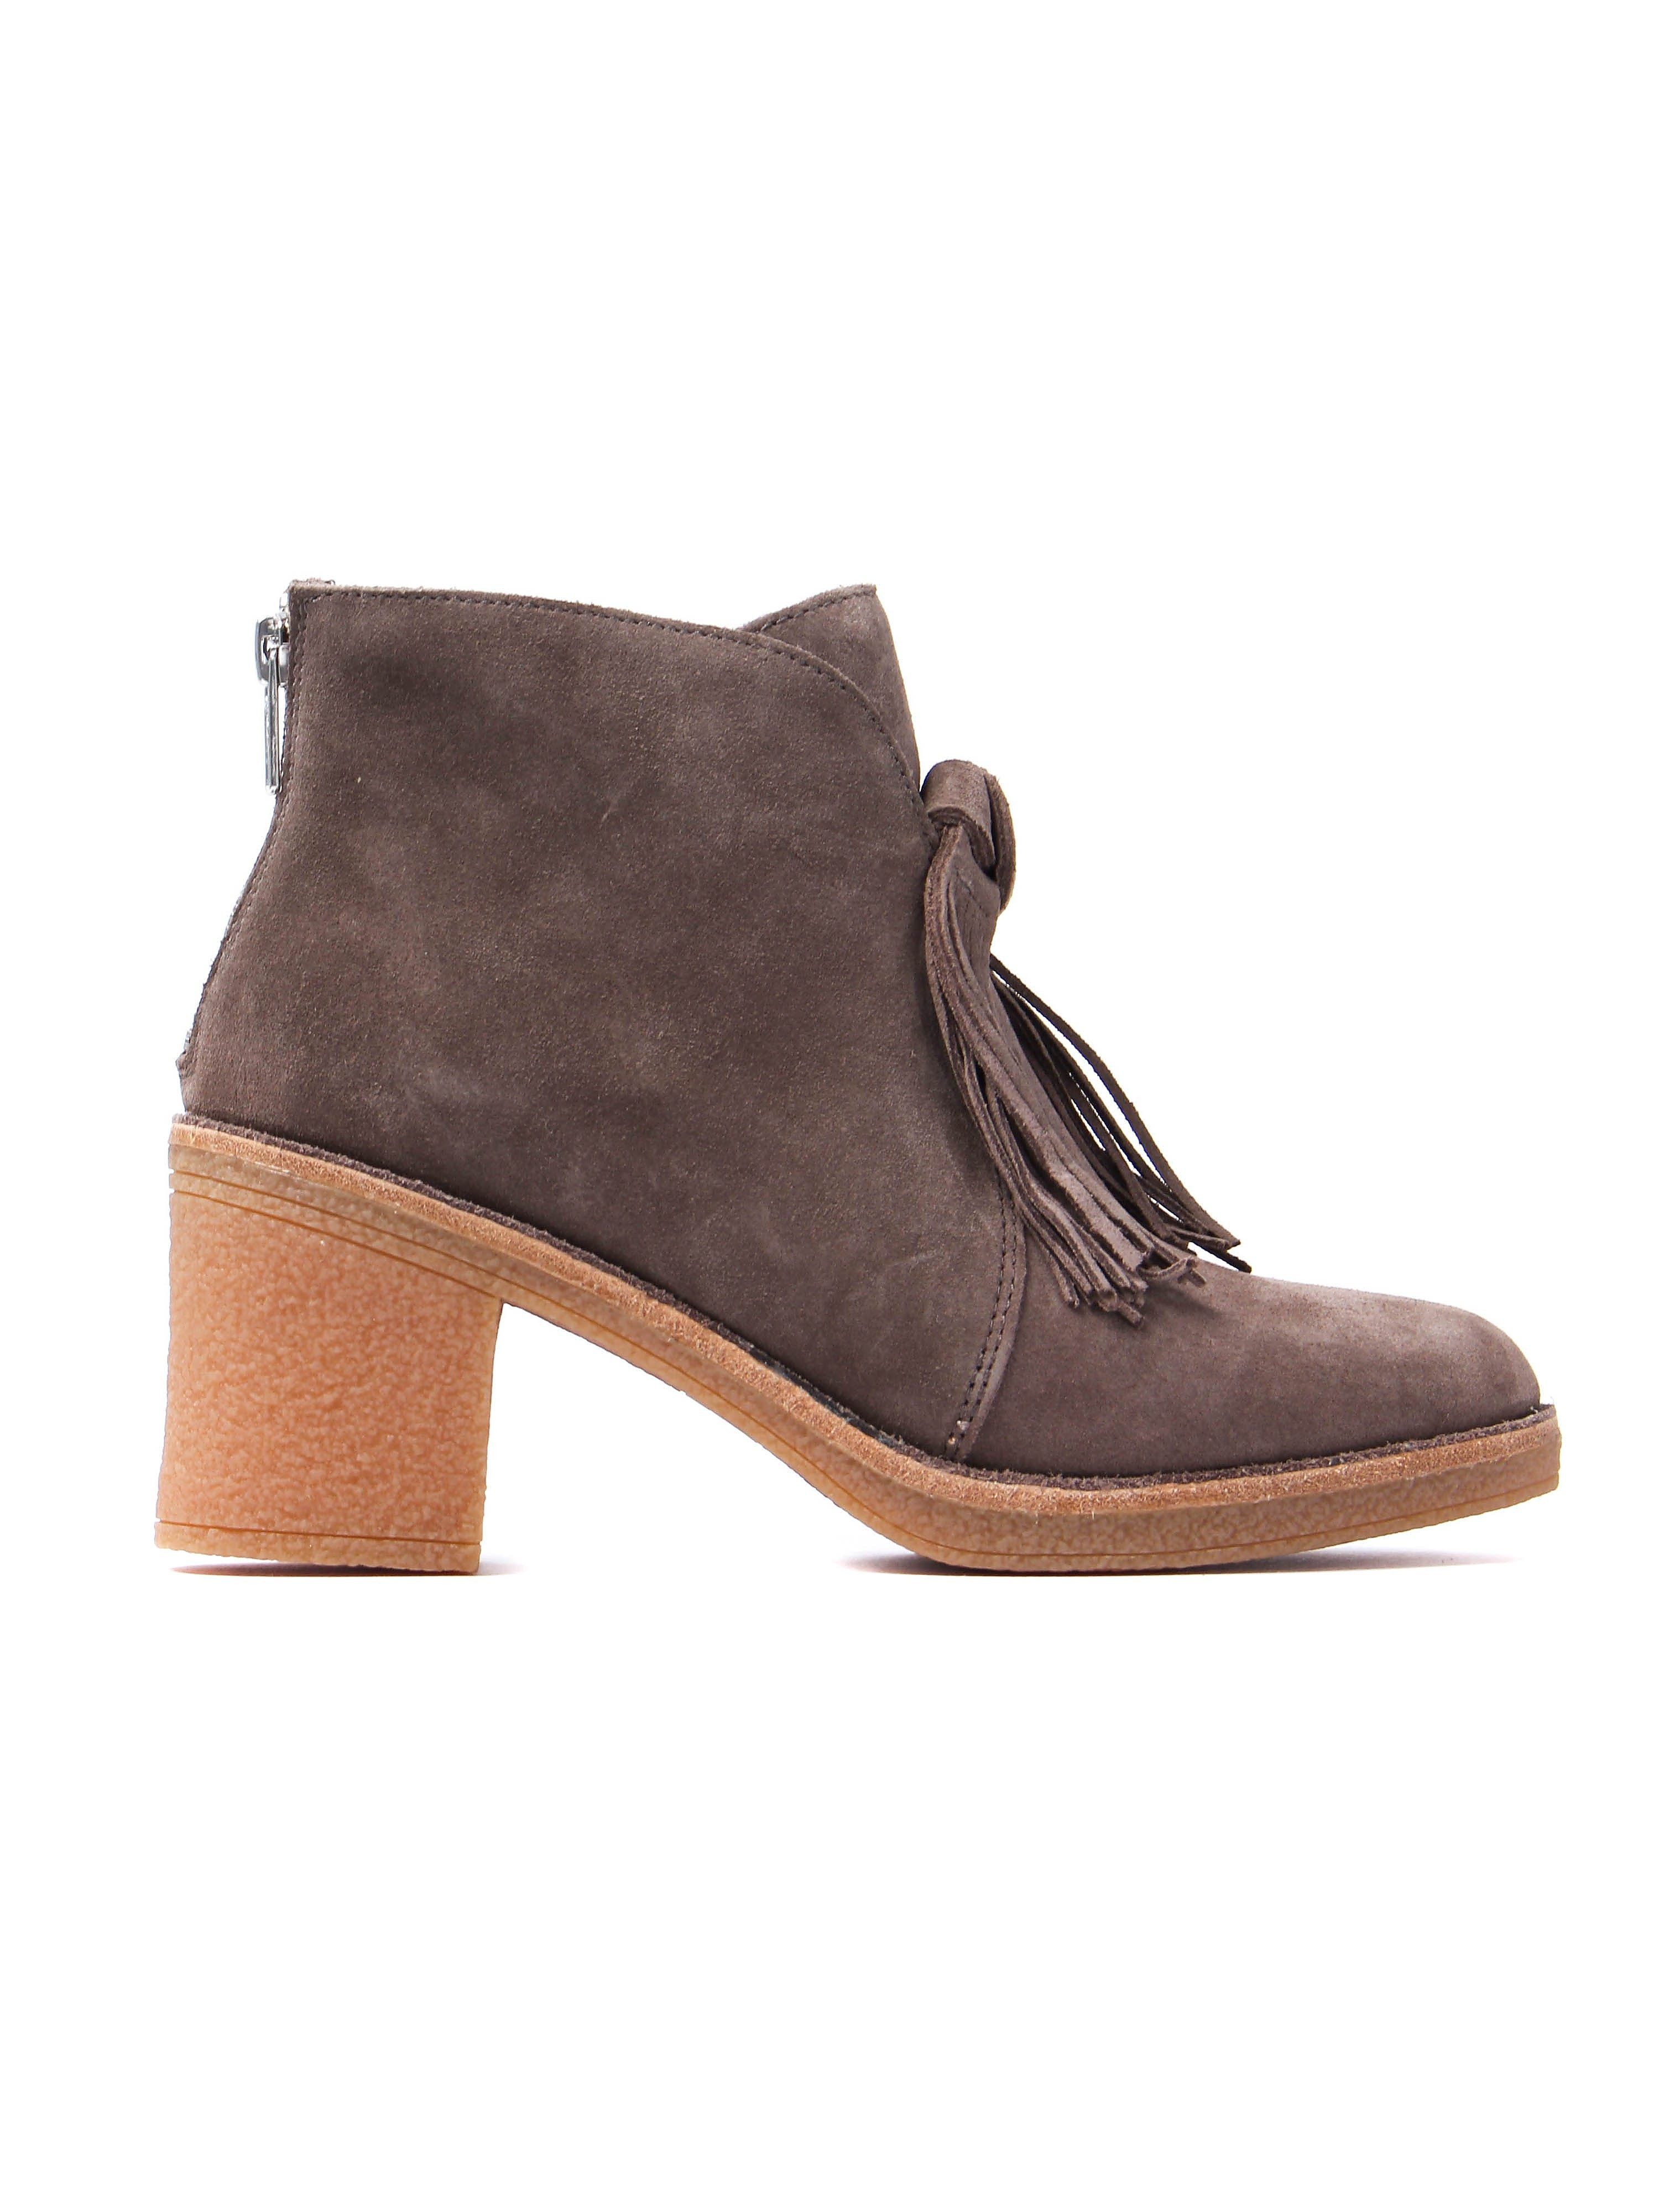 UGG Women's Corin Boots - Mouse